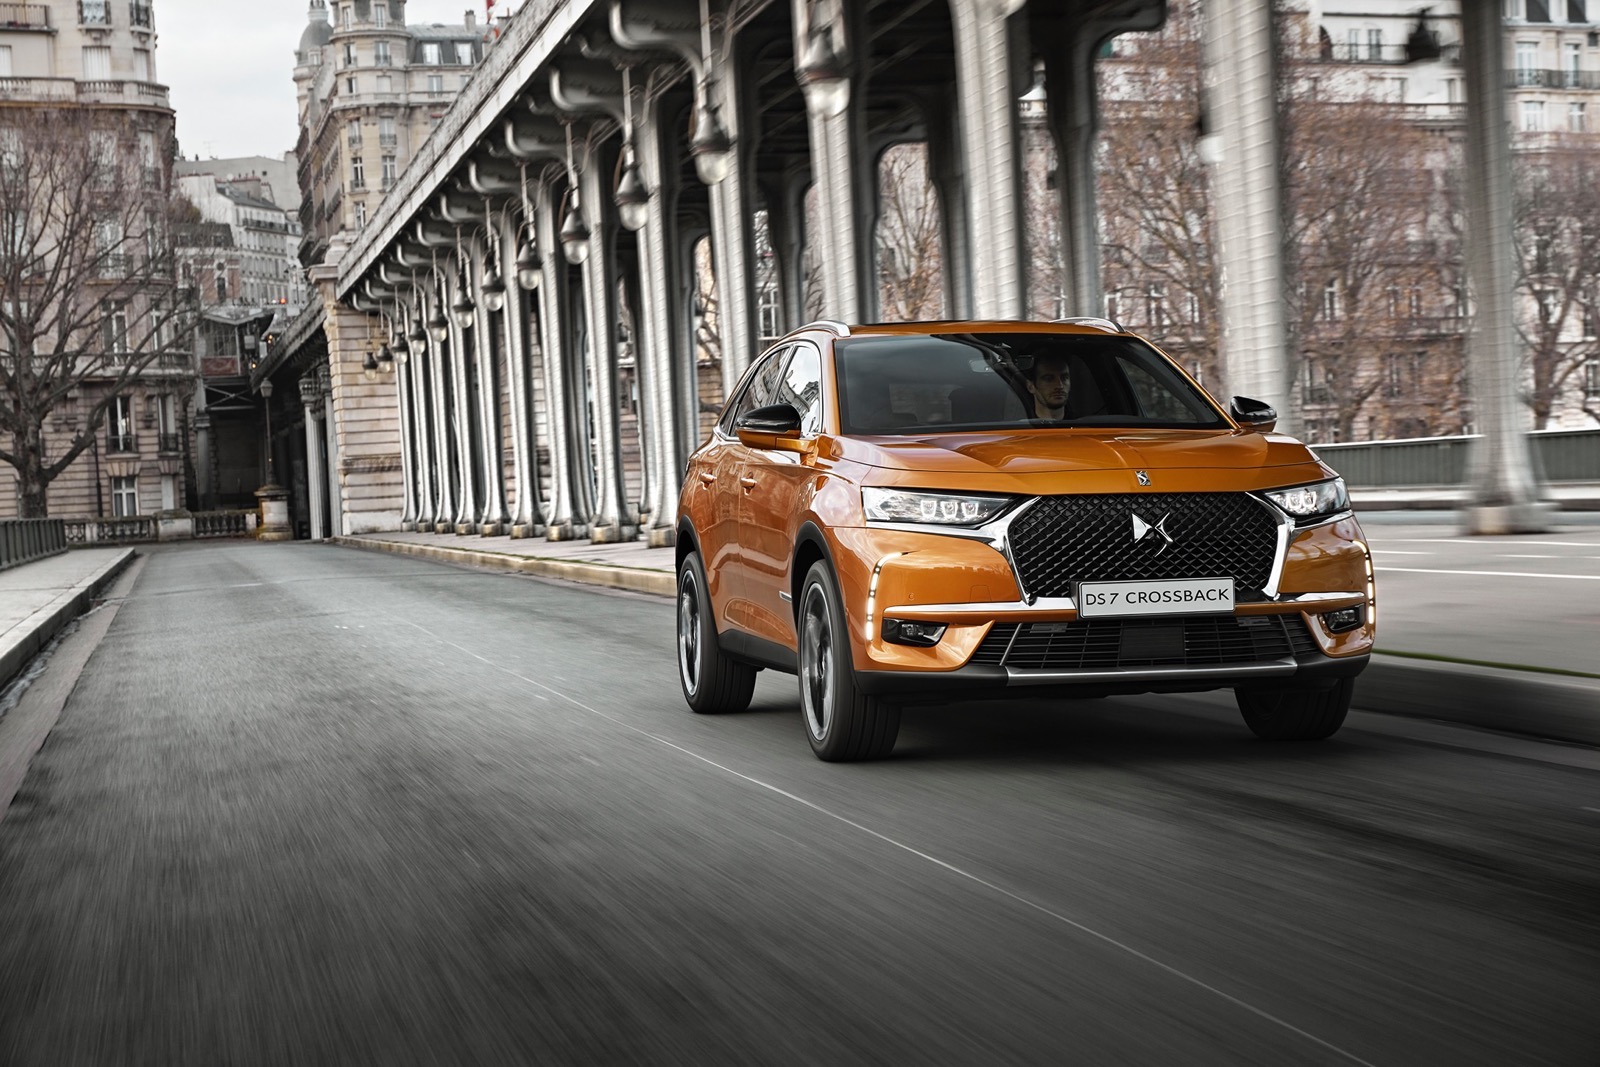 DS_7_Crossback_11